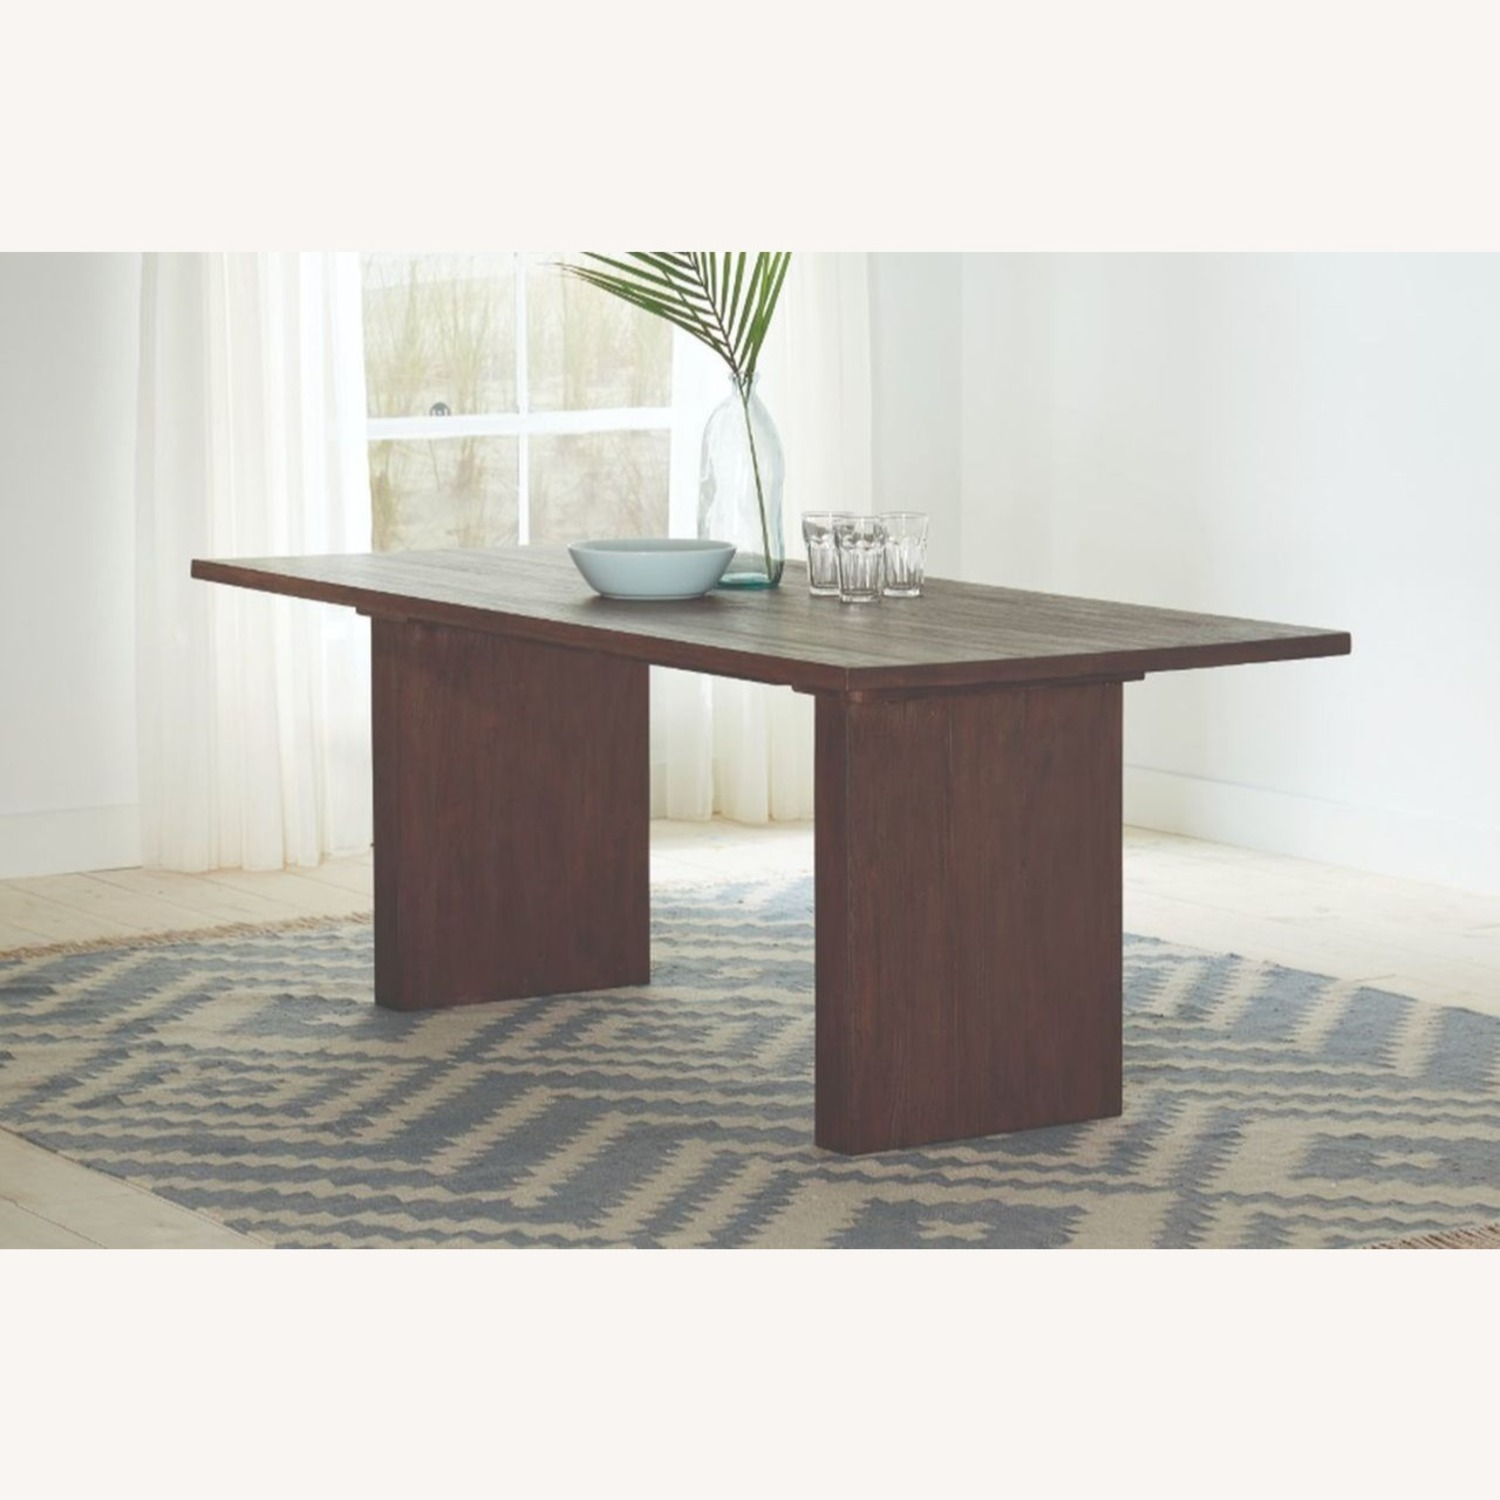 Modern Dining Table In Solid Mahogany - image-3